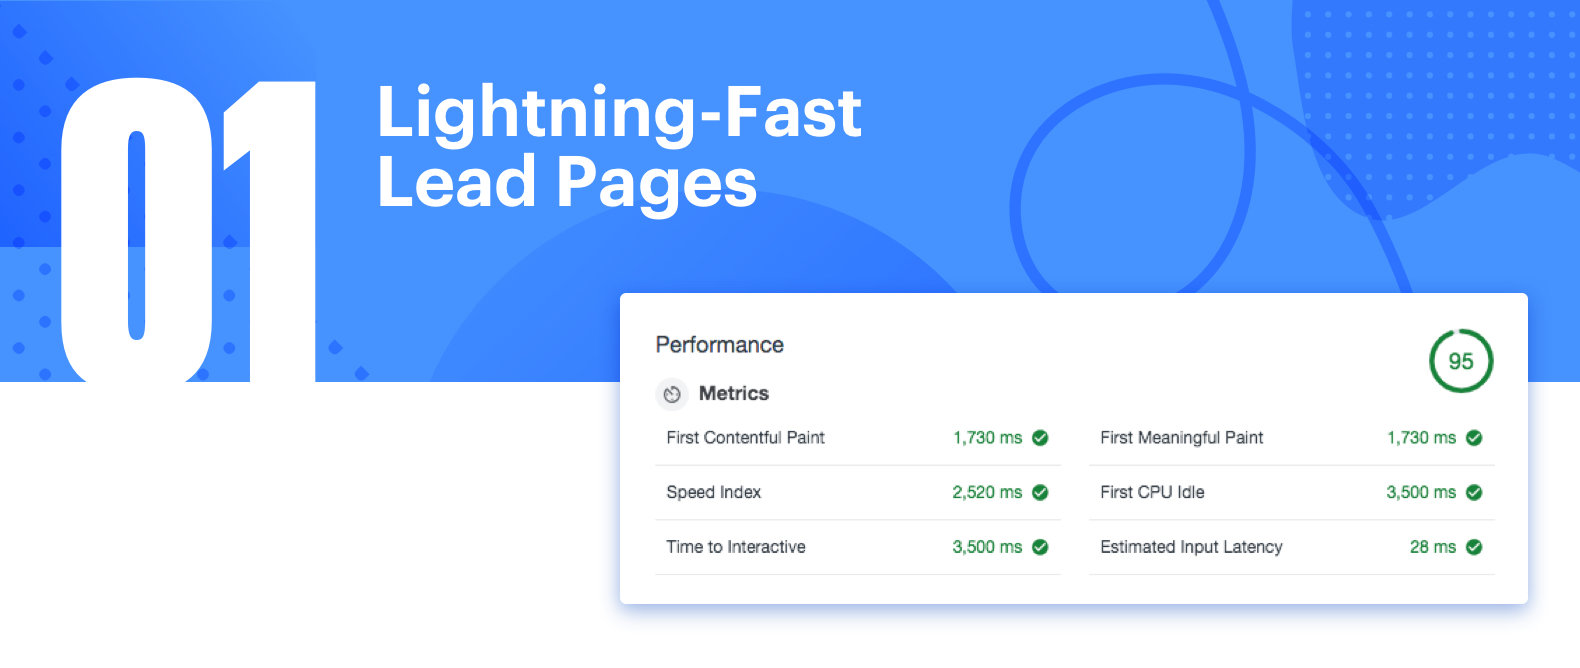 Fast Lead Page Performance